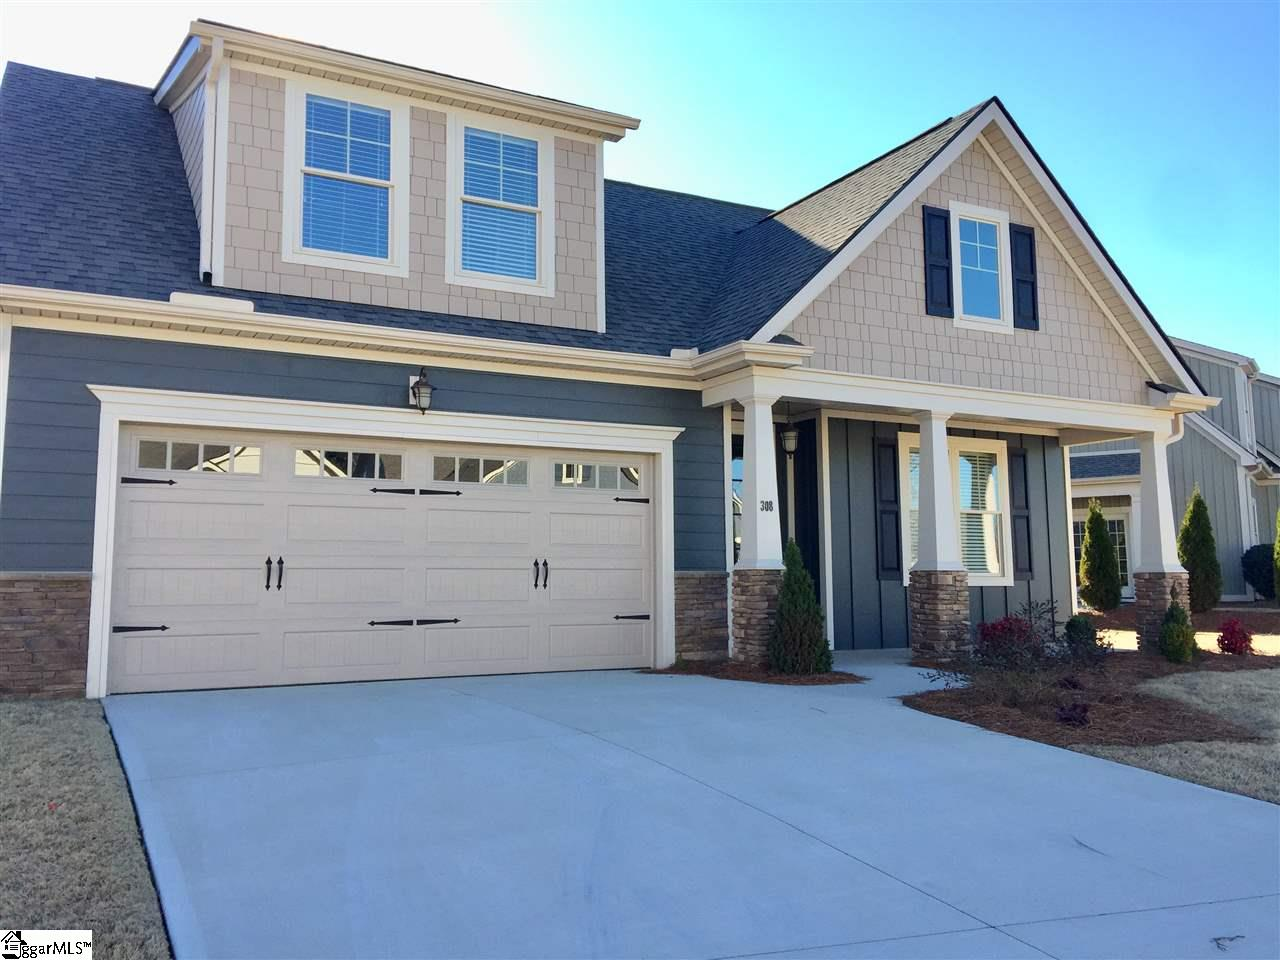 308 Belle Oaks, Simpsonville, SC 29680